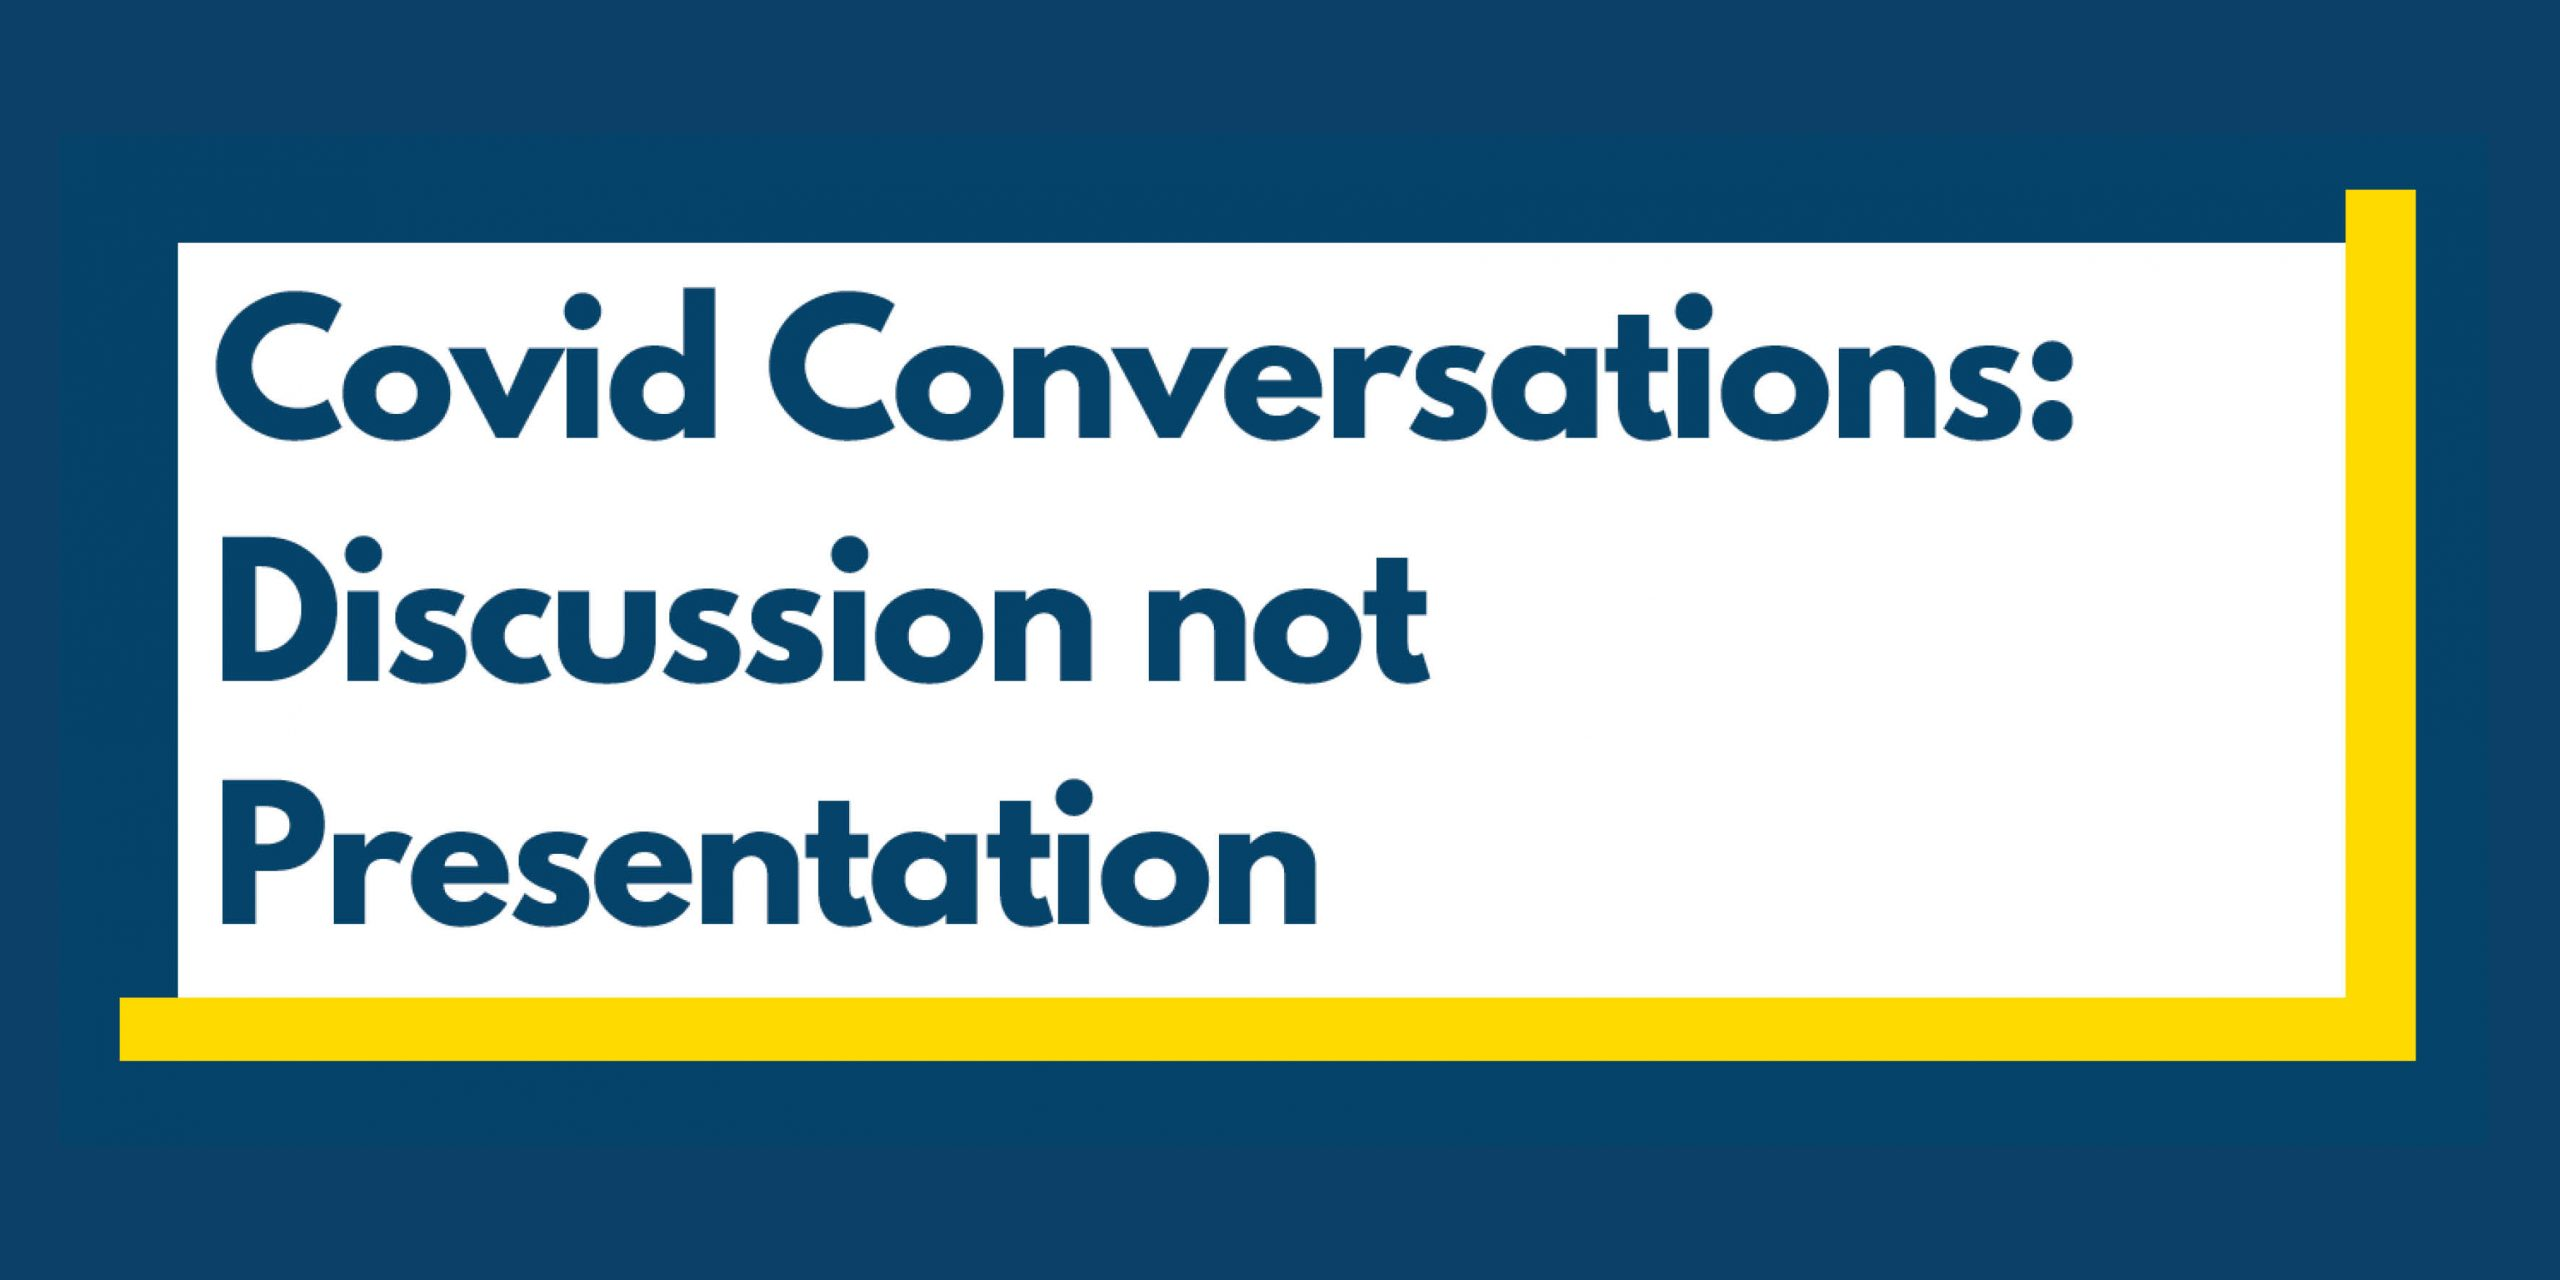 Covid Conversations: Discussion not Presentation